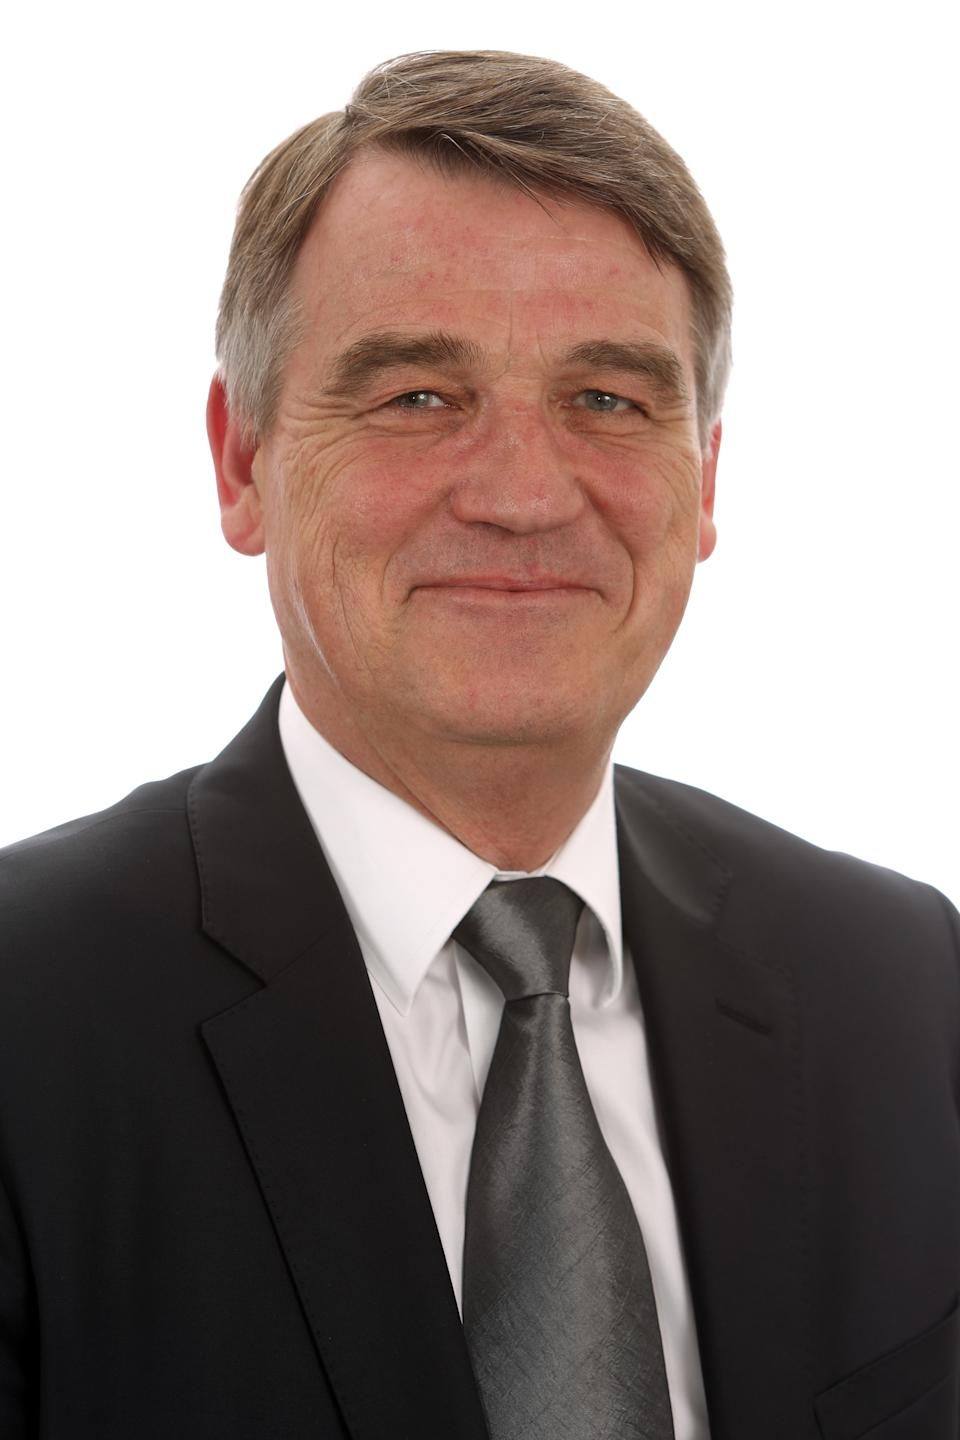 Labour councillor for Gateshead, Martin Gannon, has urged residents in the North East to remain at home (Martin Gannon)